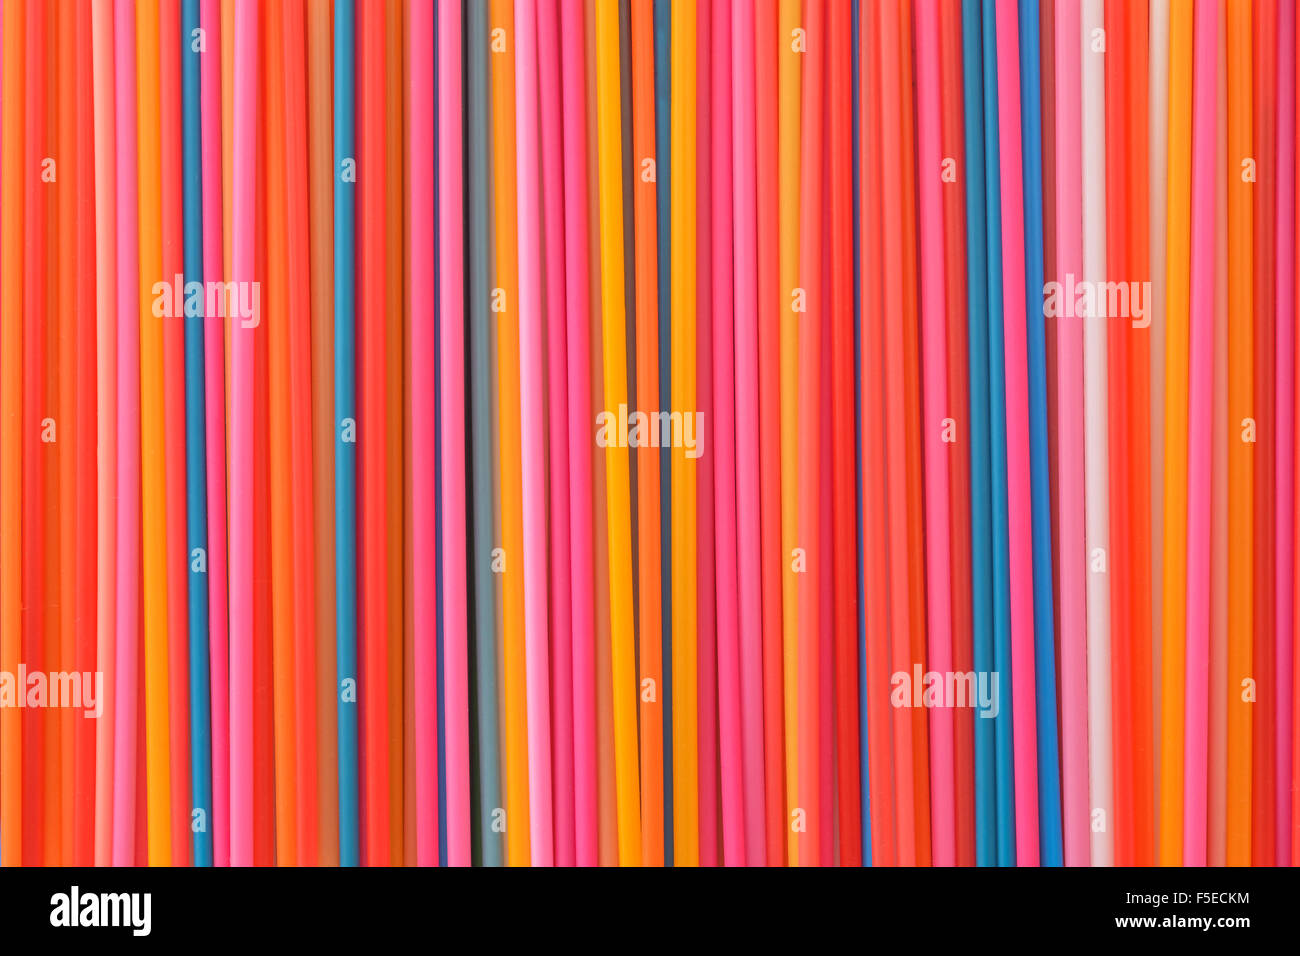 Des lignes colorées background seamless texture Photo Stock